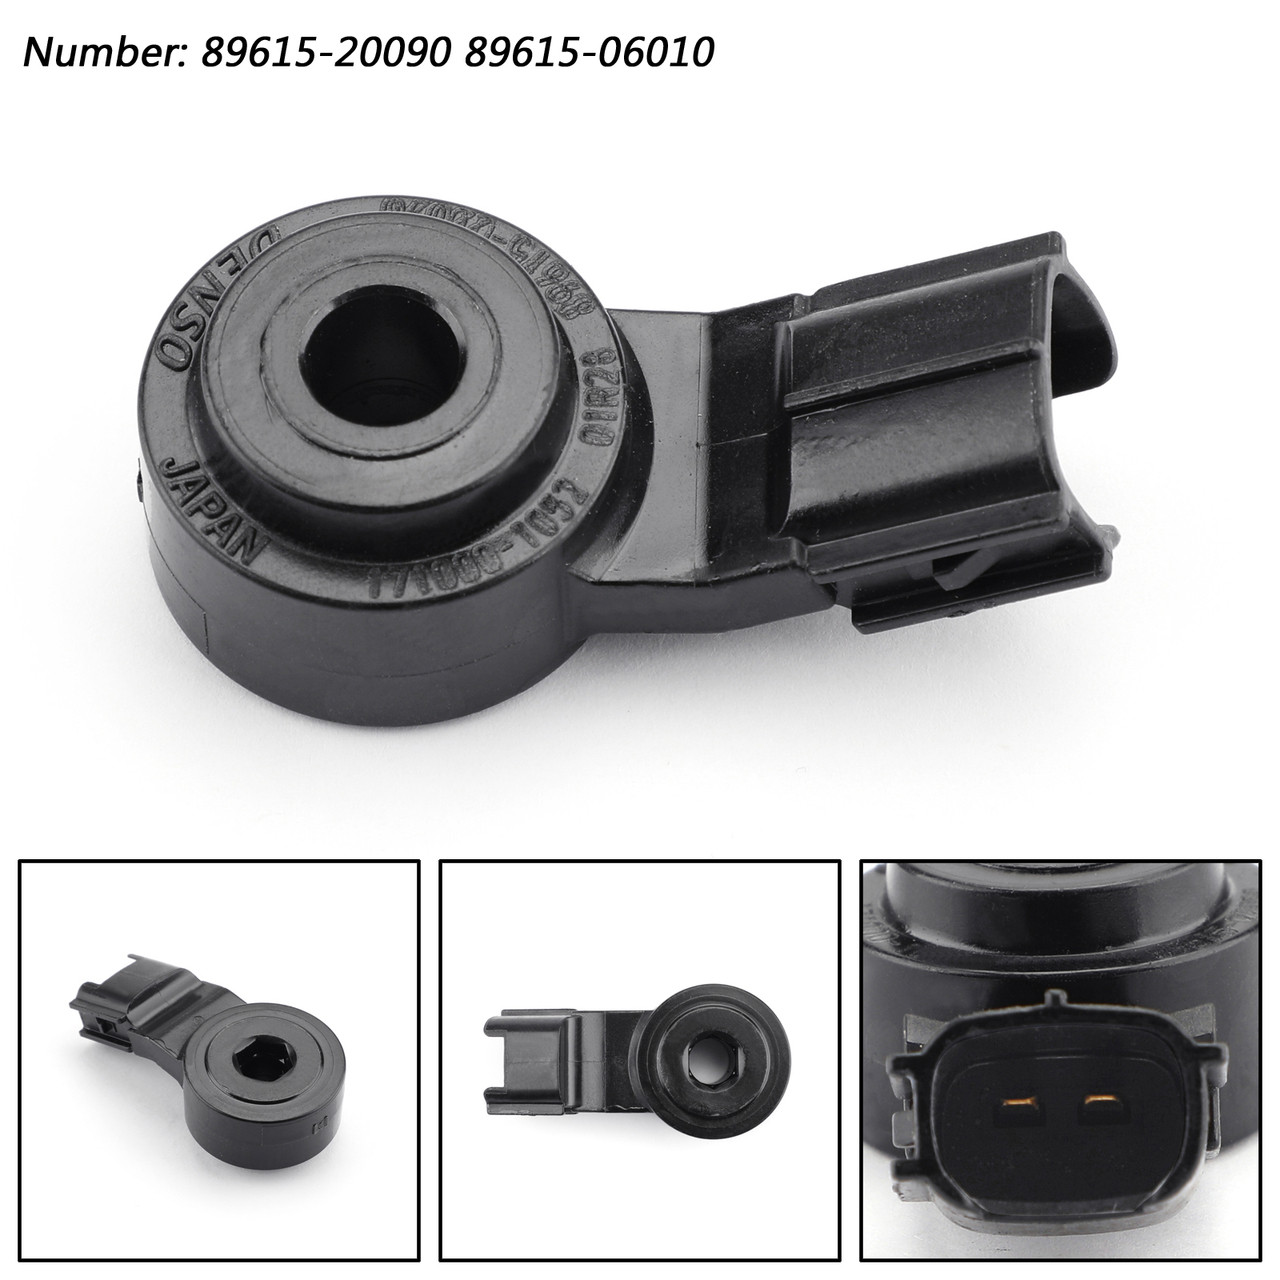 Engine Knock Sensor 8961506010 89615-20090 Fit For Toyota Corolla Matrix  Black